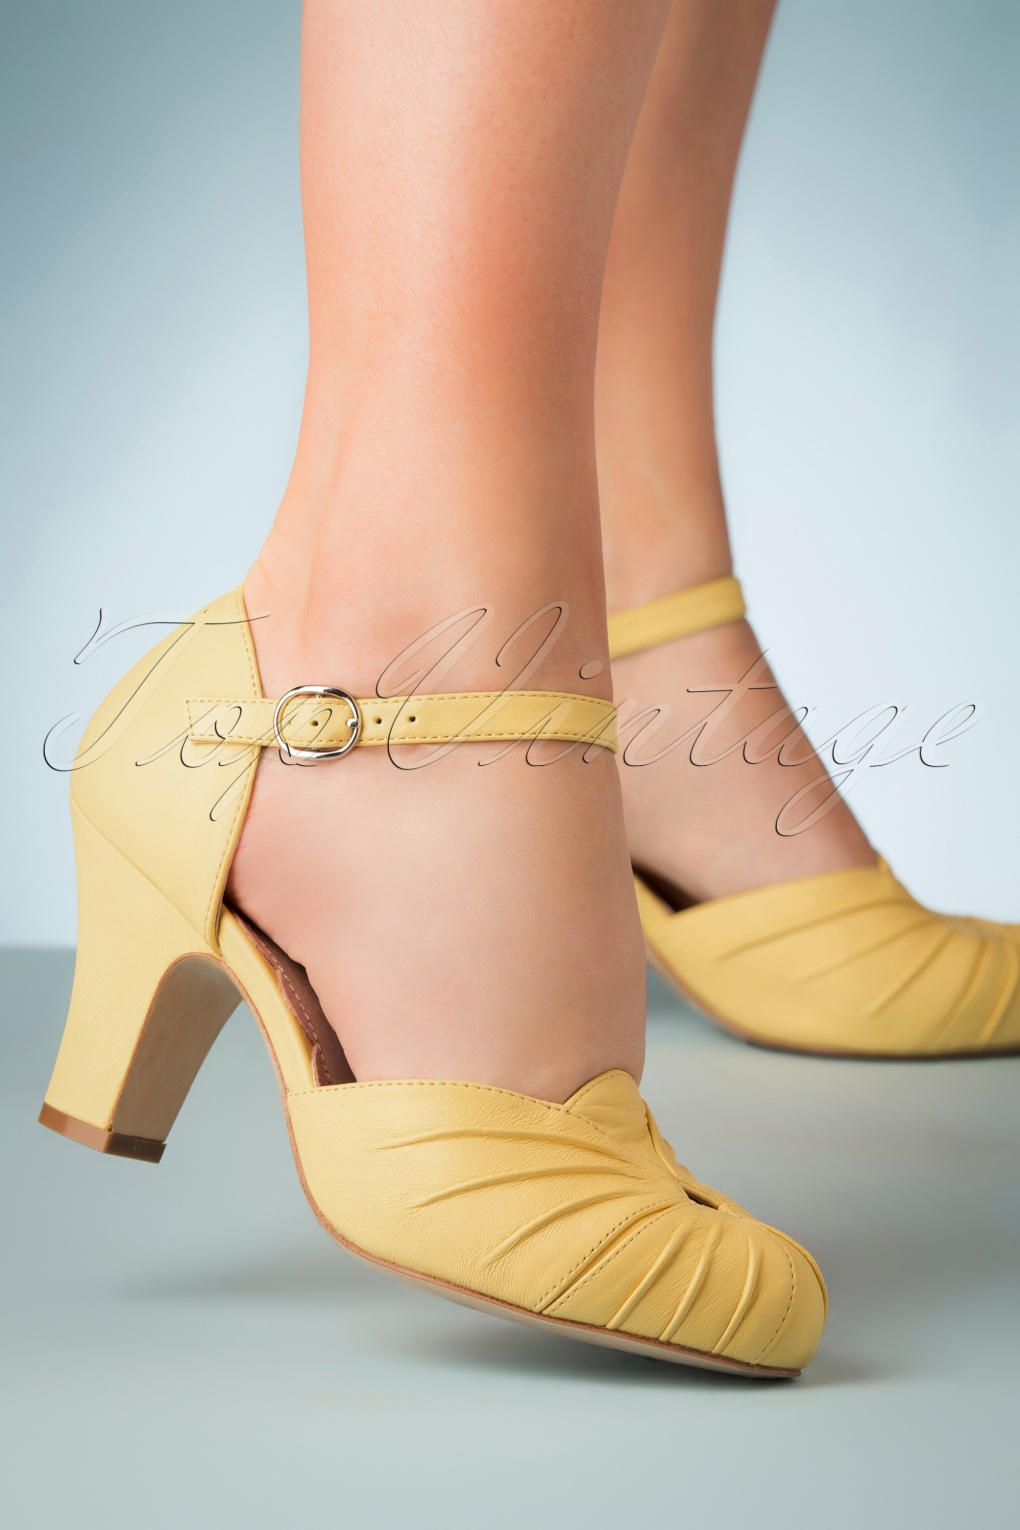 1950s Shoe Styles: Heels, Flats, Sandals, Saddles Shoes 40s Amber Mary Jane Pumps in Pastel Yellow �151.28 AT vintagedancer.com